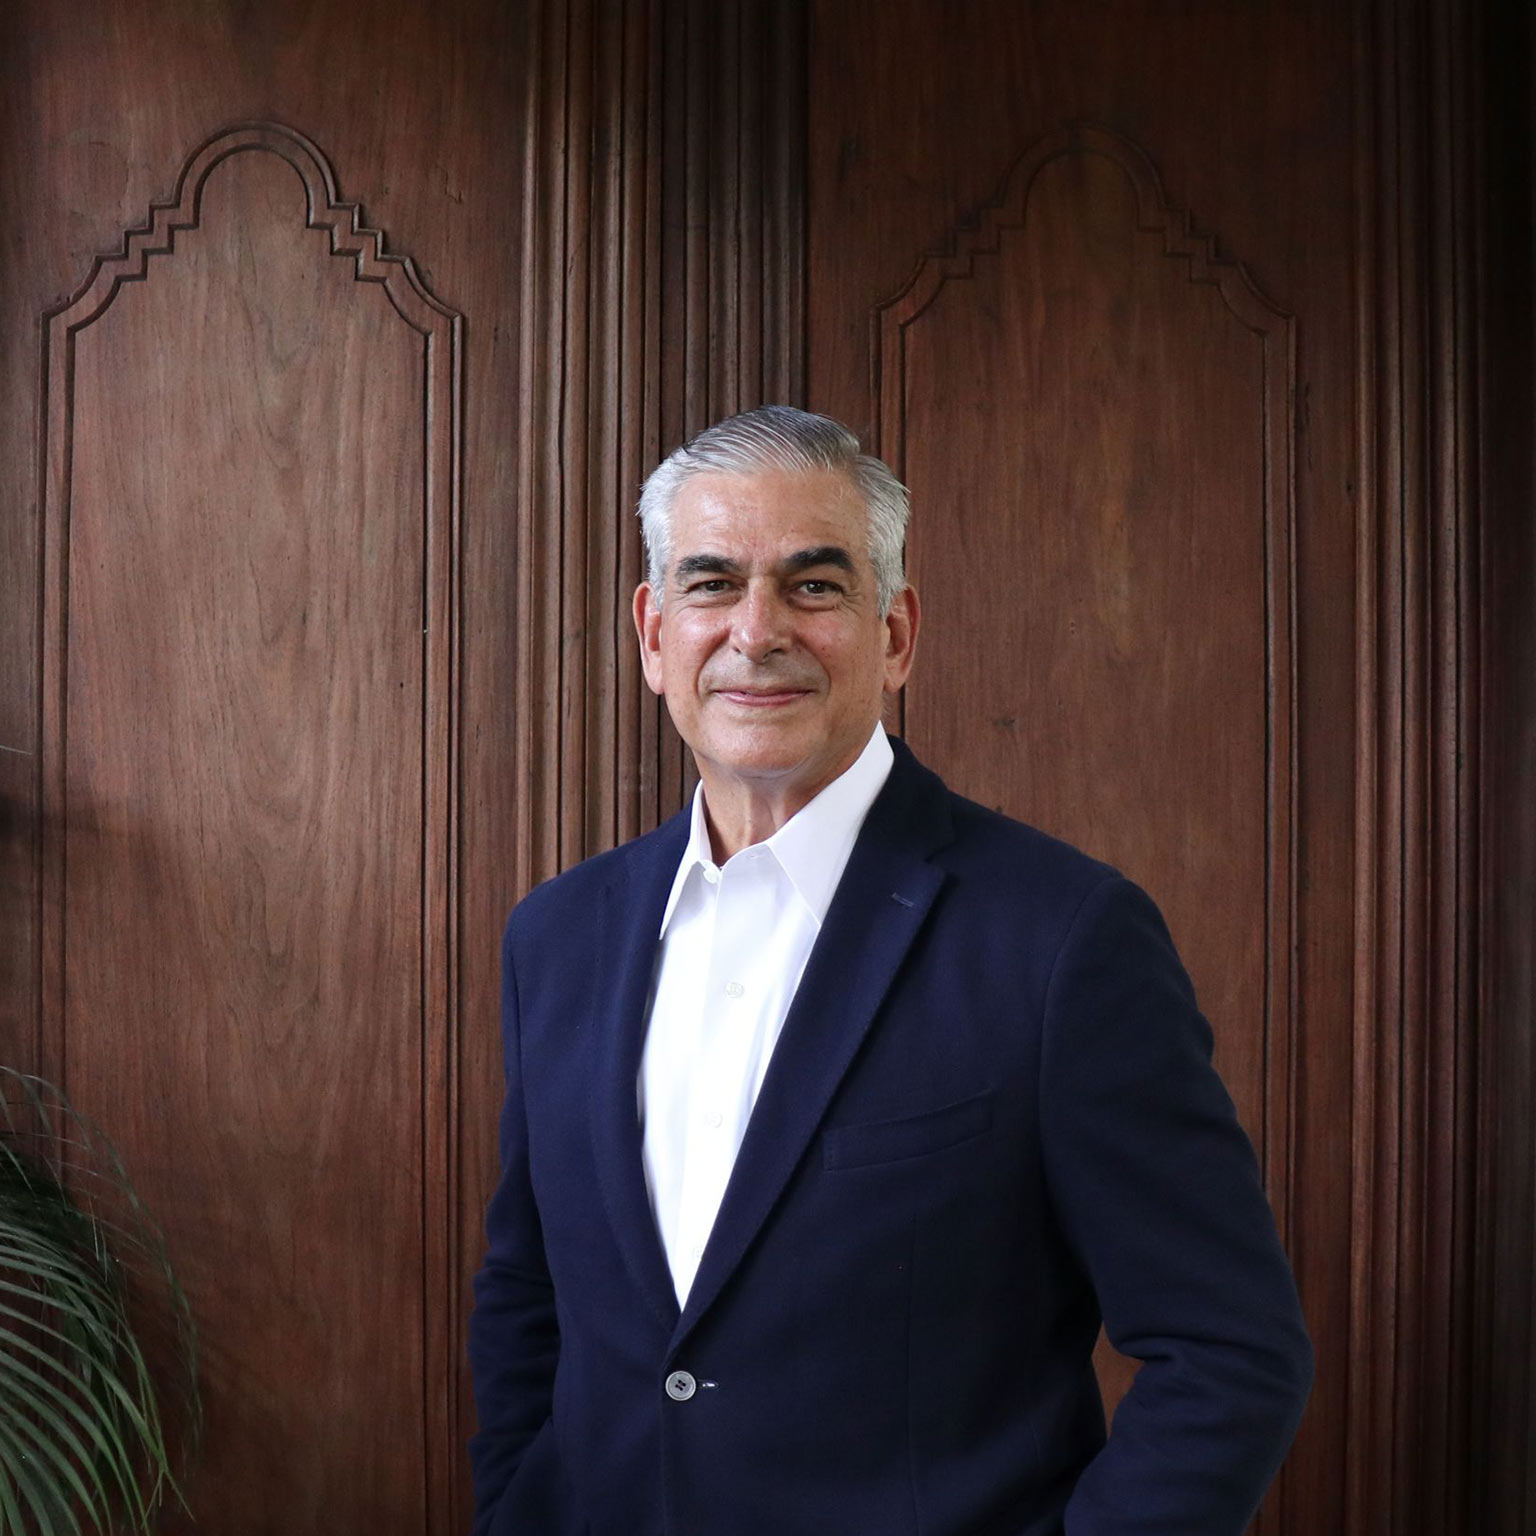 addressing-society's-pain-points:-an-interview-with-the-ceo-of-ayala-corporation